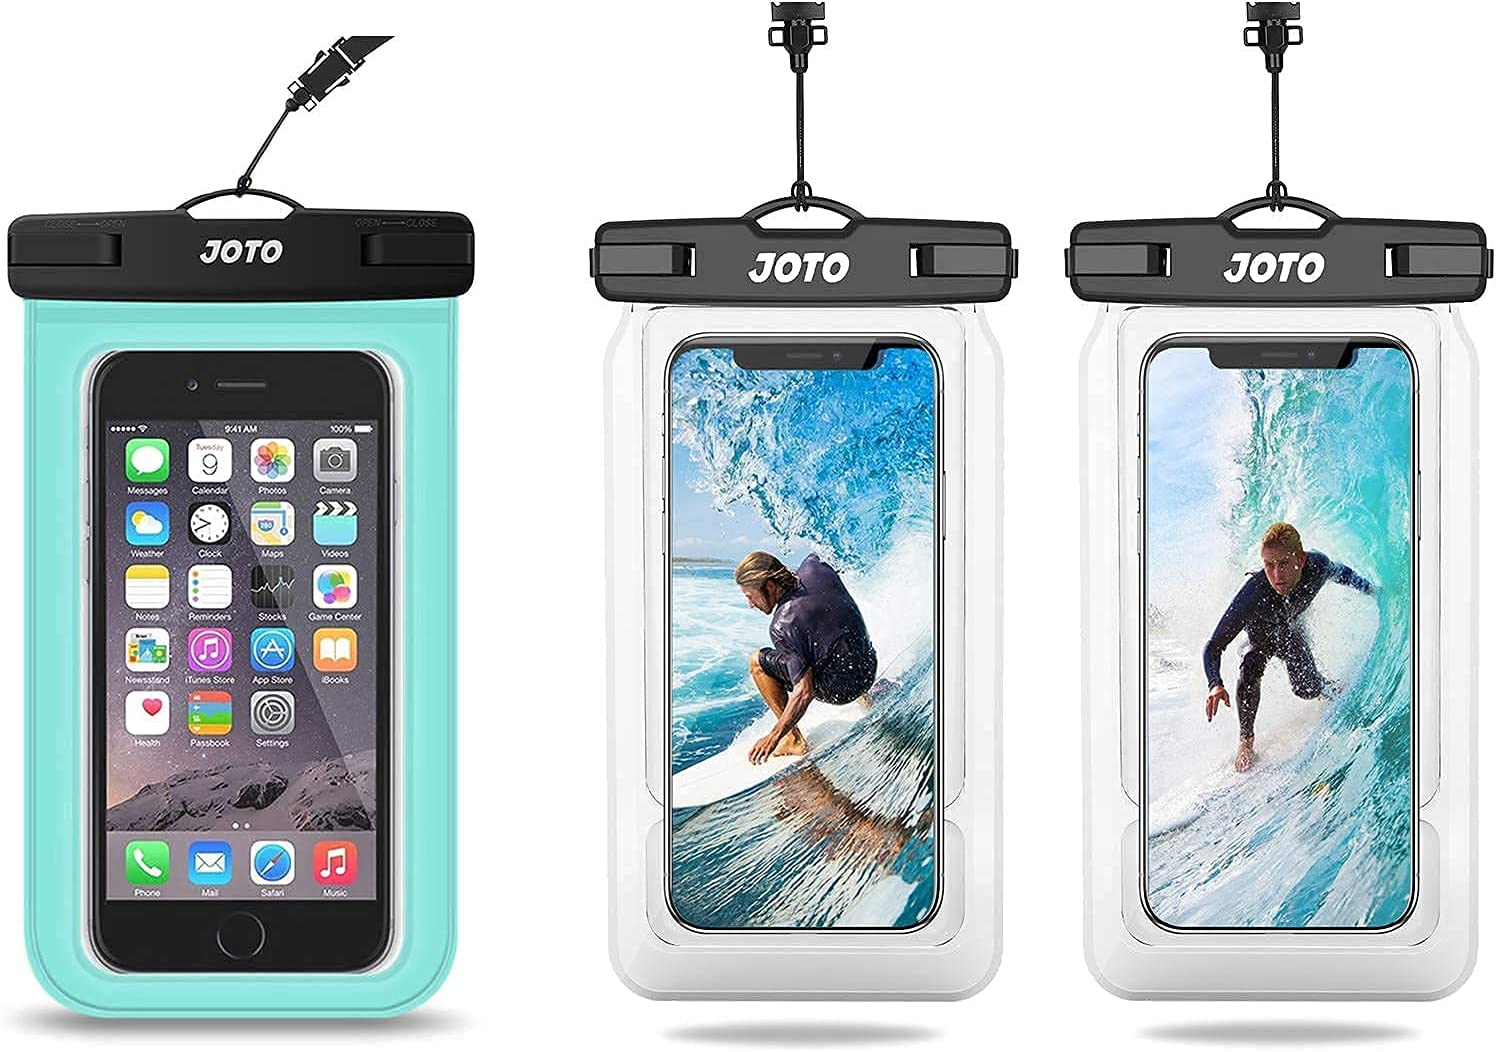 JOTO Universal Waterproof Pouch Cellphone Dry Bag Case(Green) Bundle with 2 Packs(Clear) Universal Waterproof Pouch Cellphone Dry Bag Case